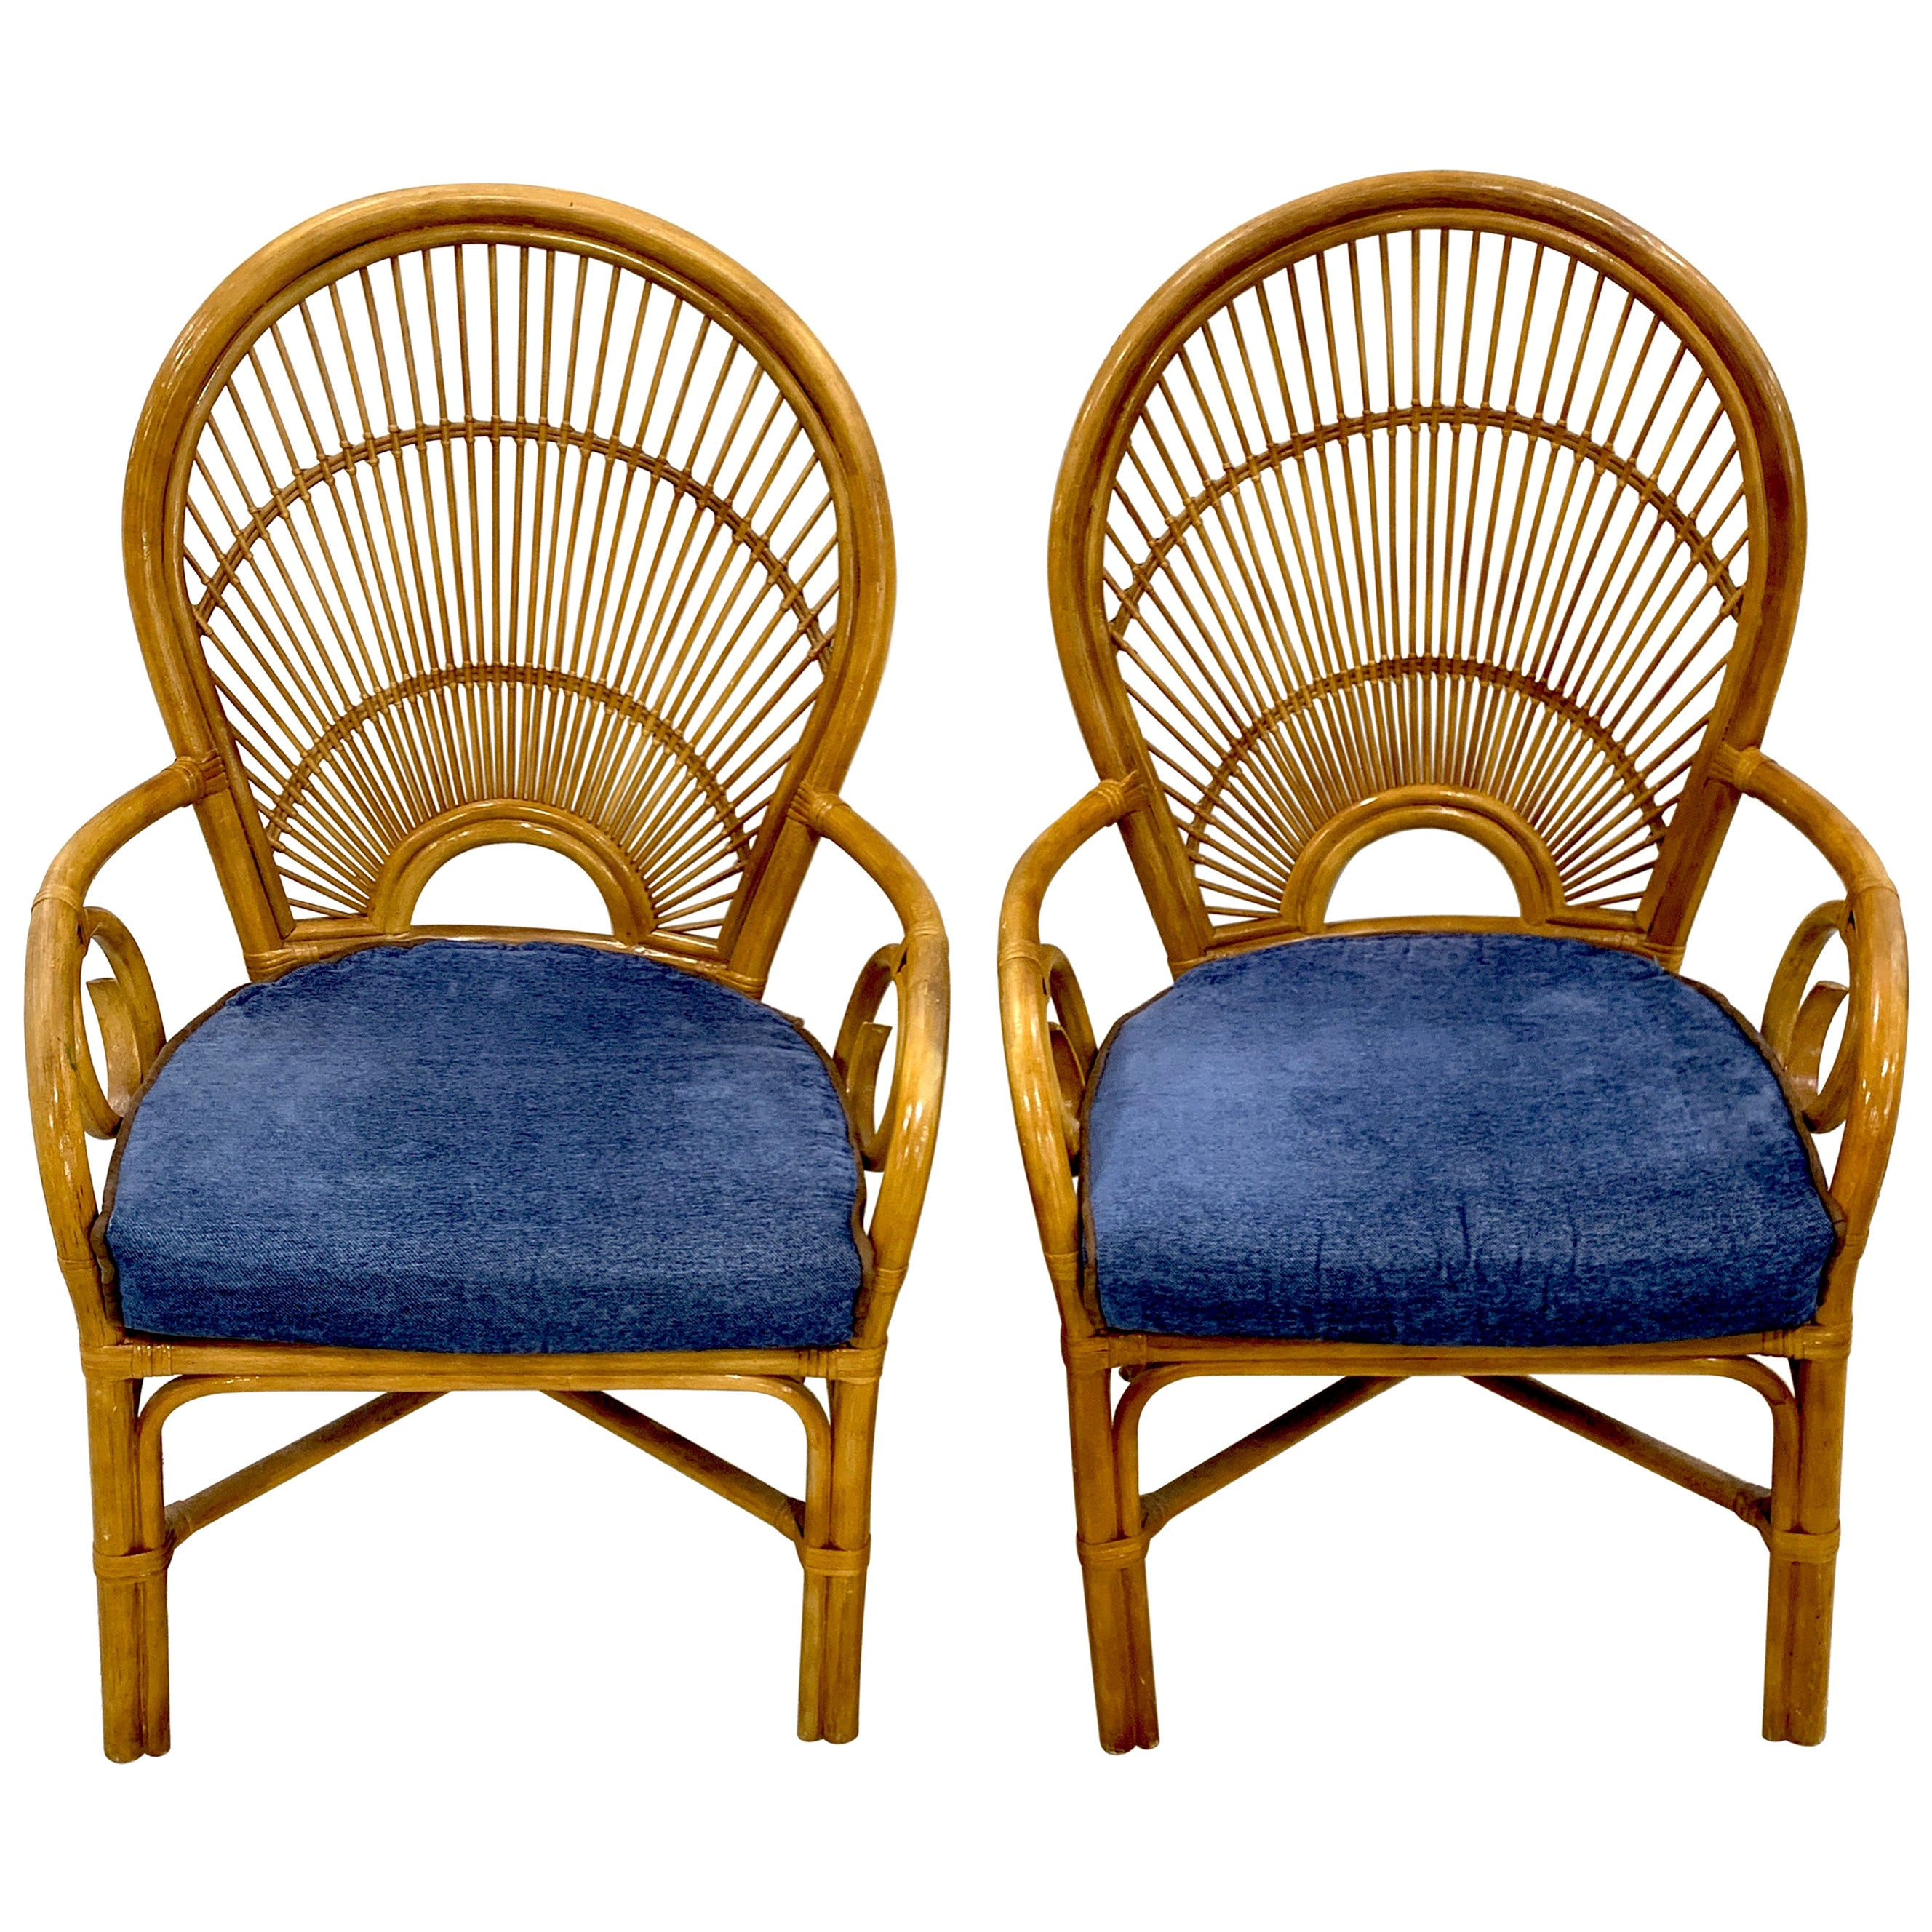 Pair of 1970s Bamboo and Rattan 'Sunrise' Armchairs